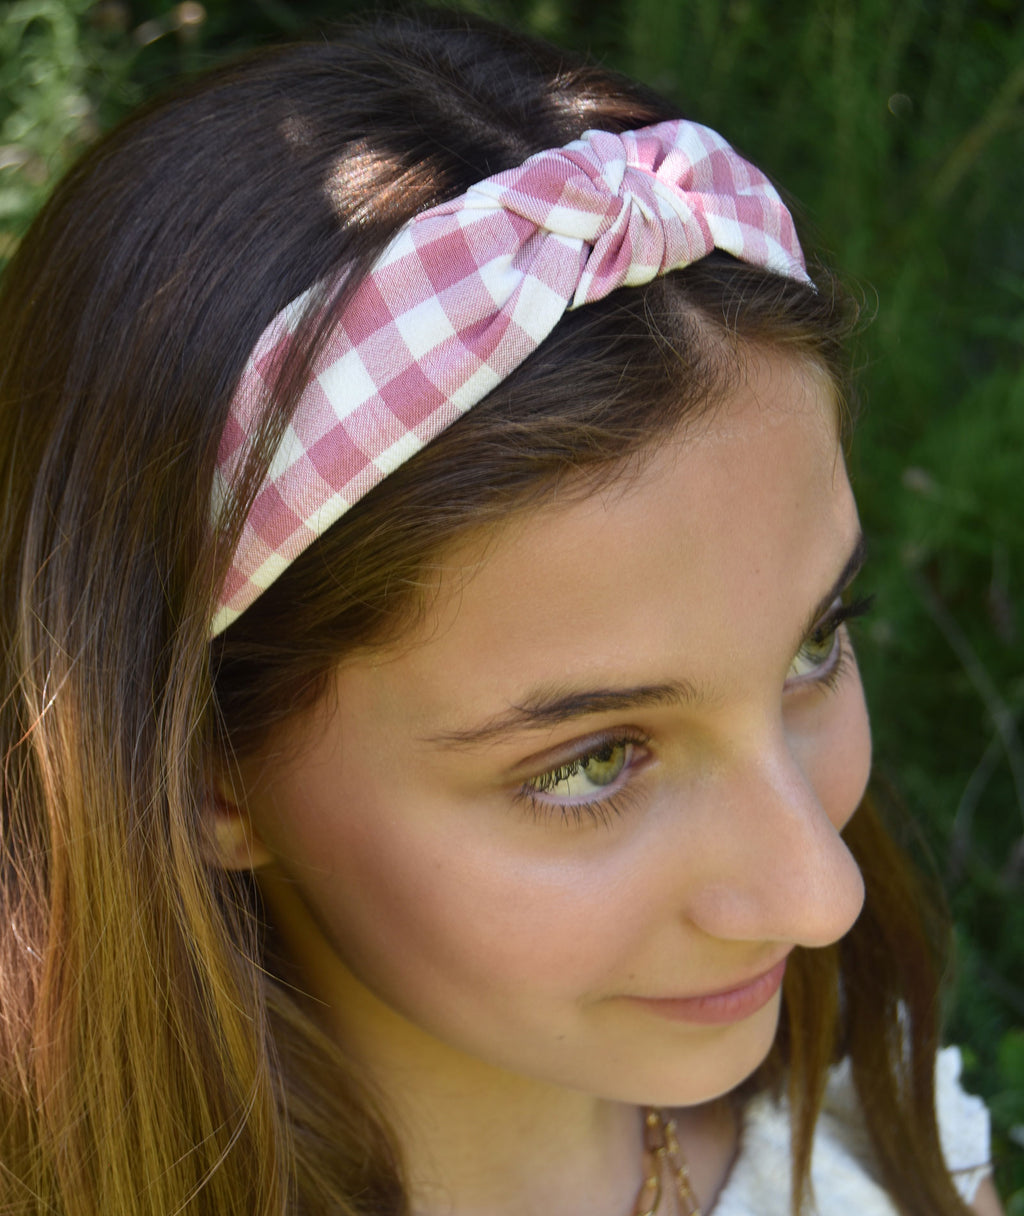 Fashionista J Gingham Headband